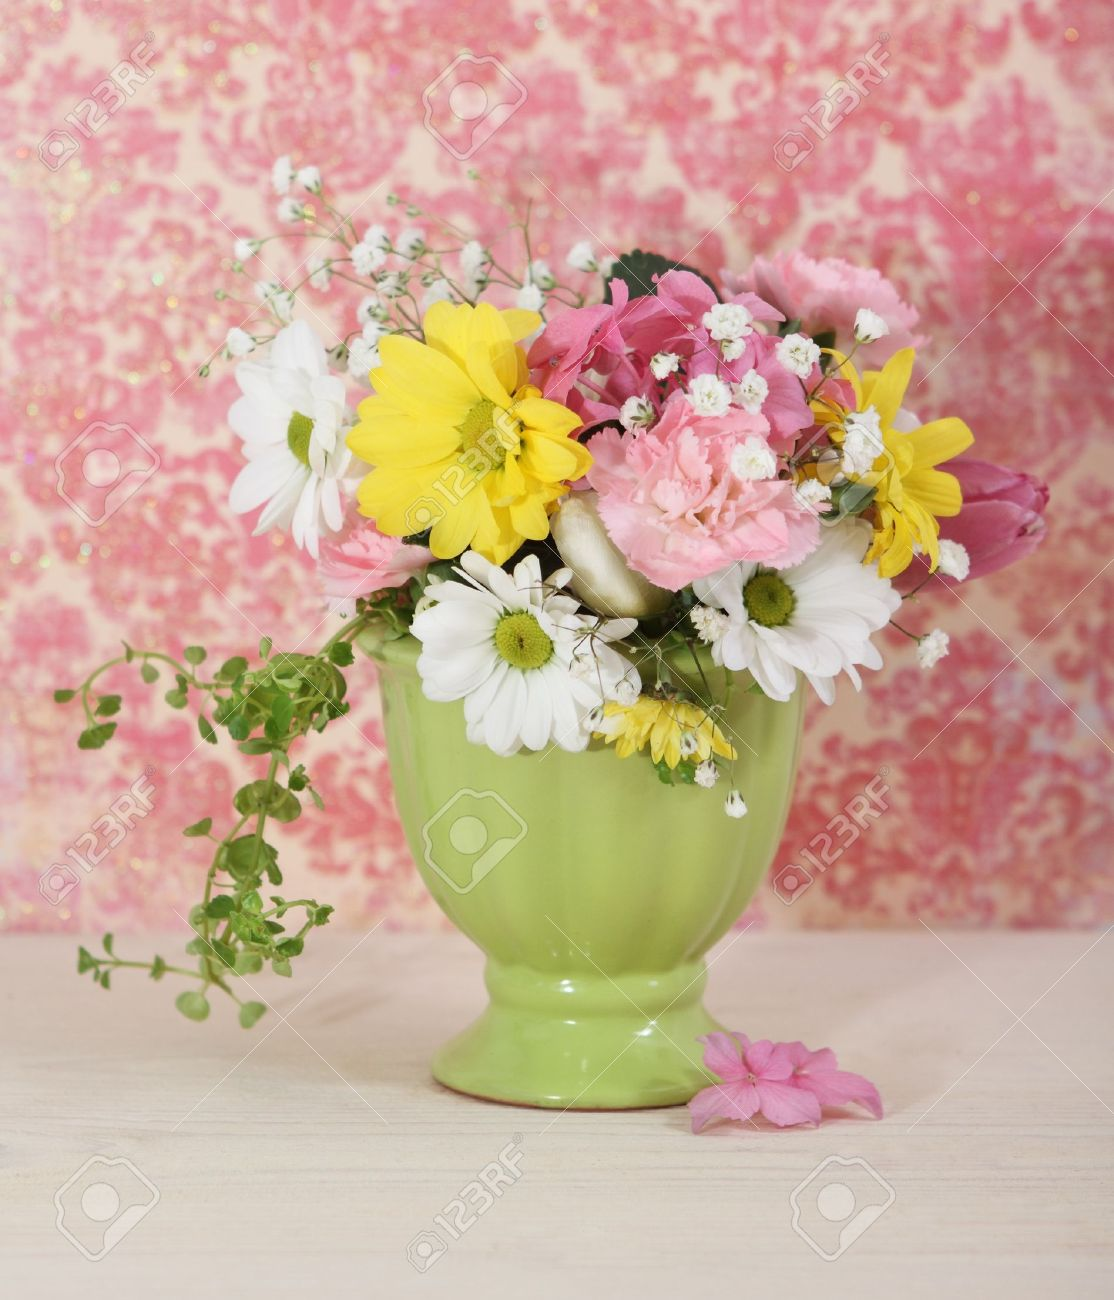 Bouquet Of White Yellow And Pink Flowers In The Green Vase Stock